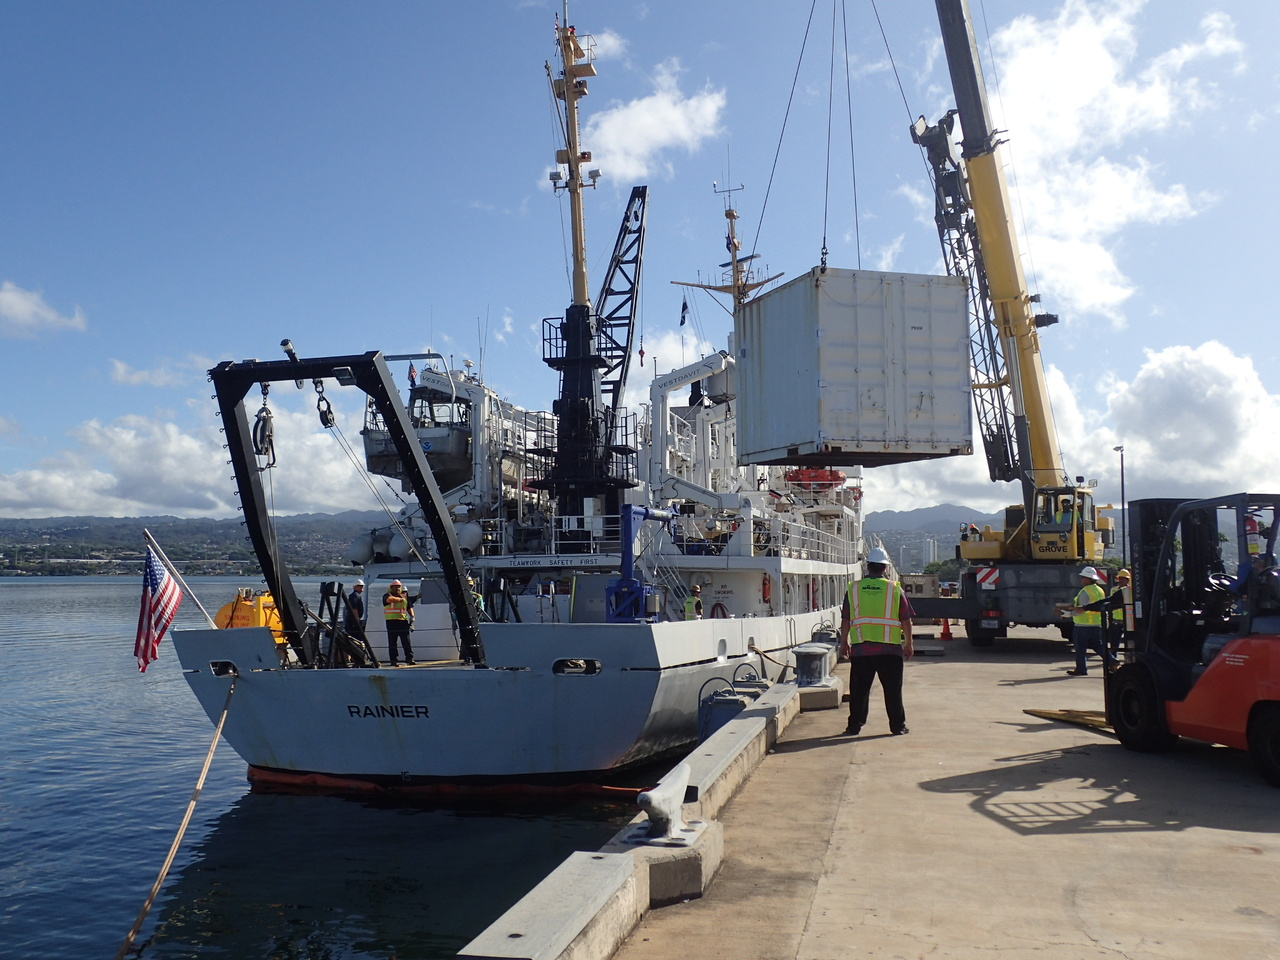 Loading day! Safety officals stand by as a large crane moves our mobile lab from the pier onto the <i>Rainier</i>. The scientists will use this for (air conditioned!) lab space to store and prep gear, as well as process samples from the field. <i>Photo: NOAA Fisheries/James Morioka. </i>